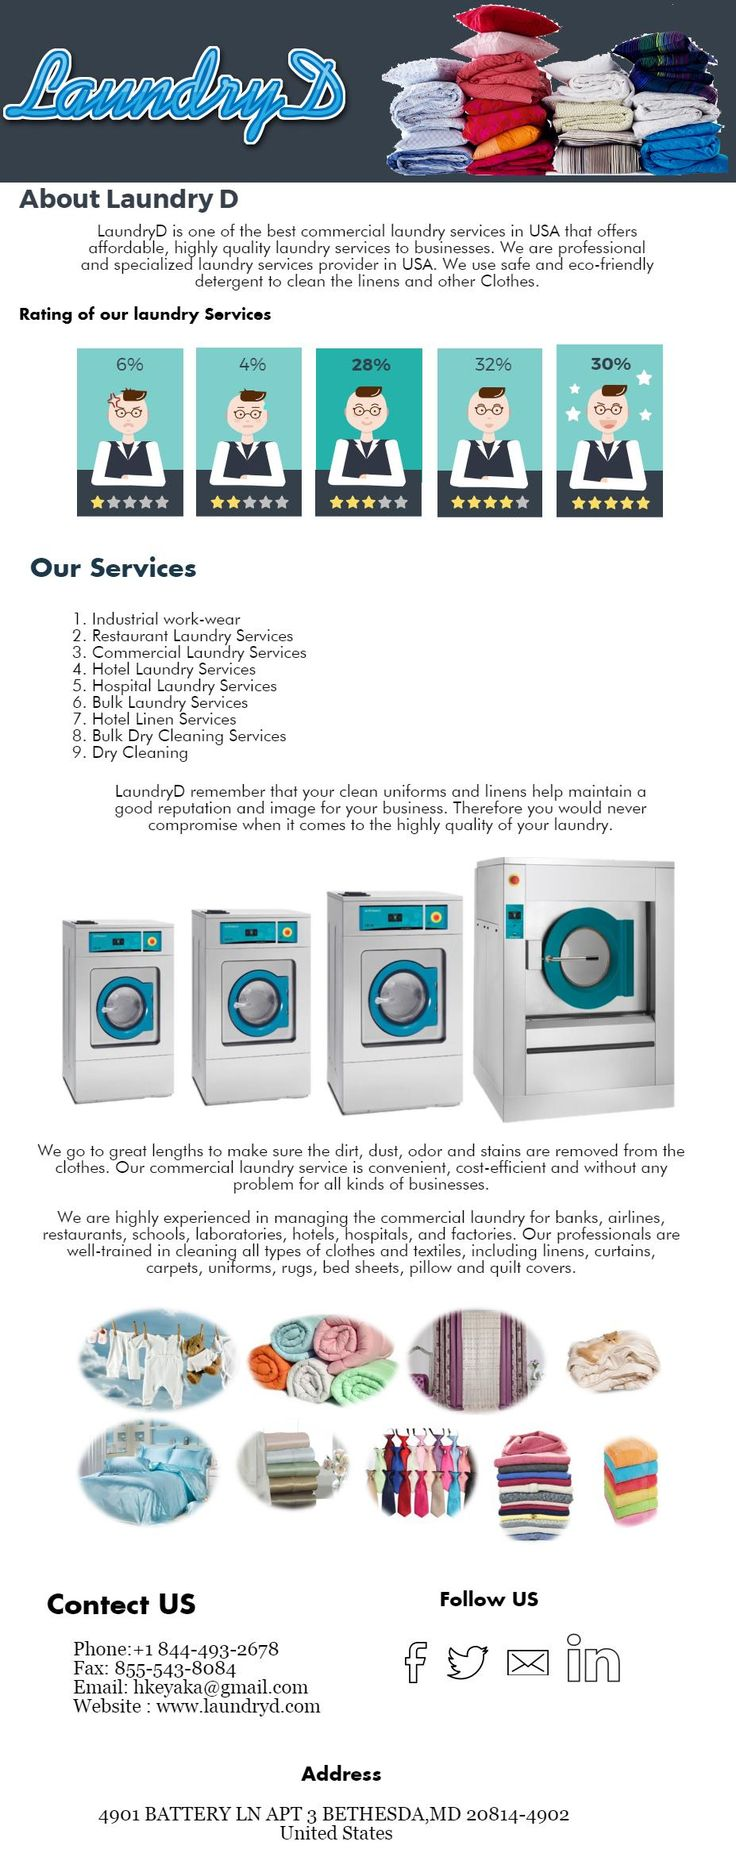 Are you search laundry services Industrial work-wear and Commercial Laundry Services in USA then you can contect LaundryD. LaundryD is offring best laundry services and dry cleaning services for industrial and commercial so you are free for contact by call 8444932678 any time with LundryD.